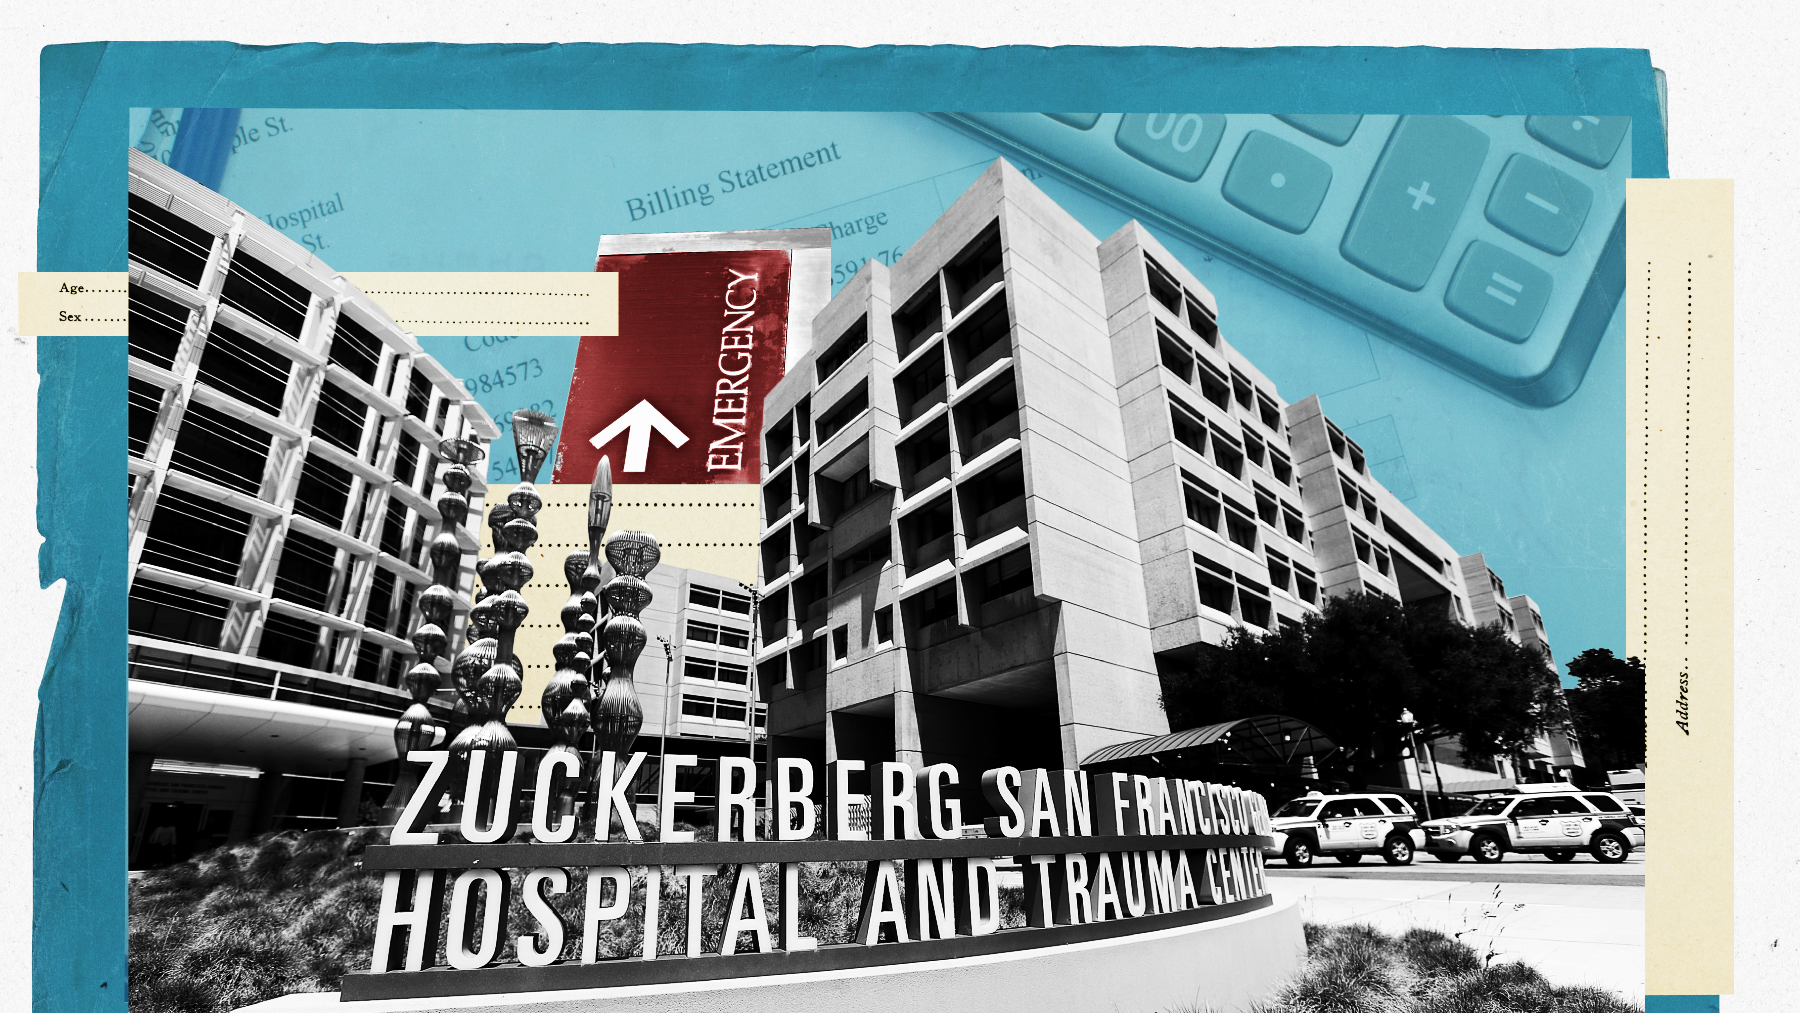 Prices at Zuckerberg hospital's emergency room are higher than anywhere else in San Francisco - Vox